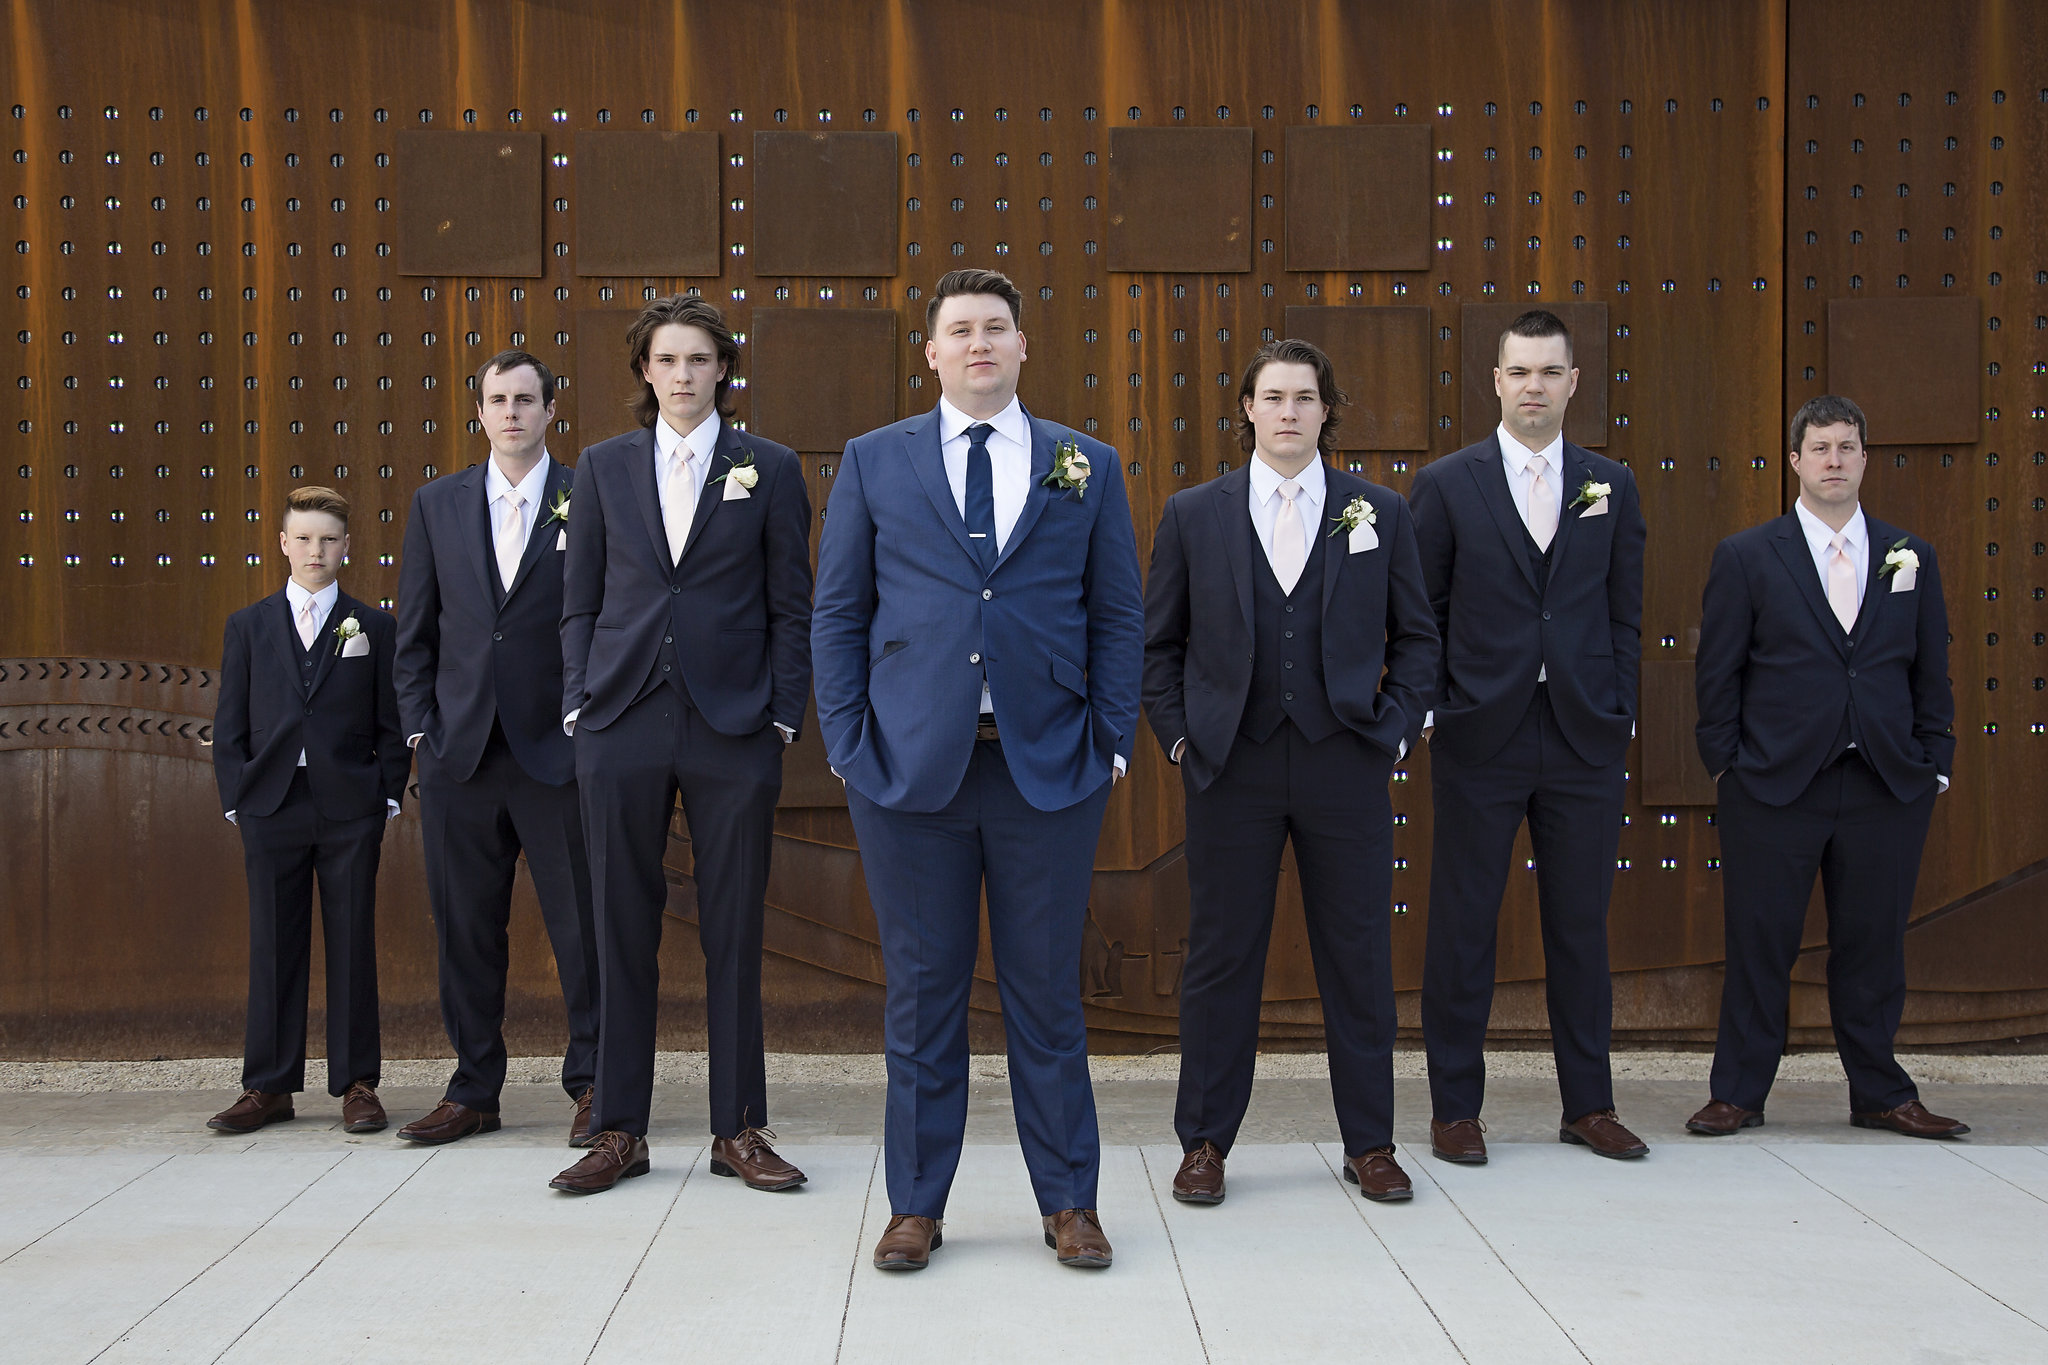 I loved the contrast of Josh's navy suit with the black ones the groomsmen wore.